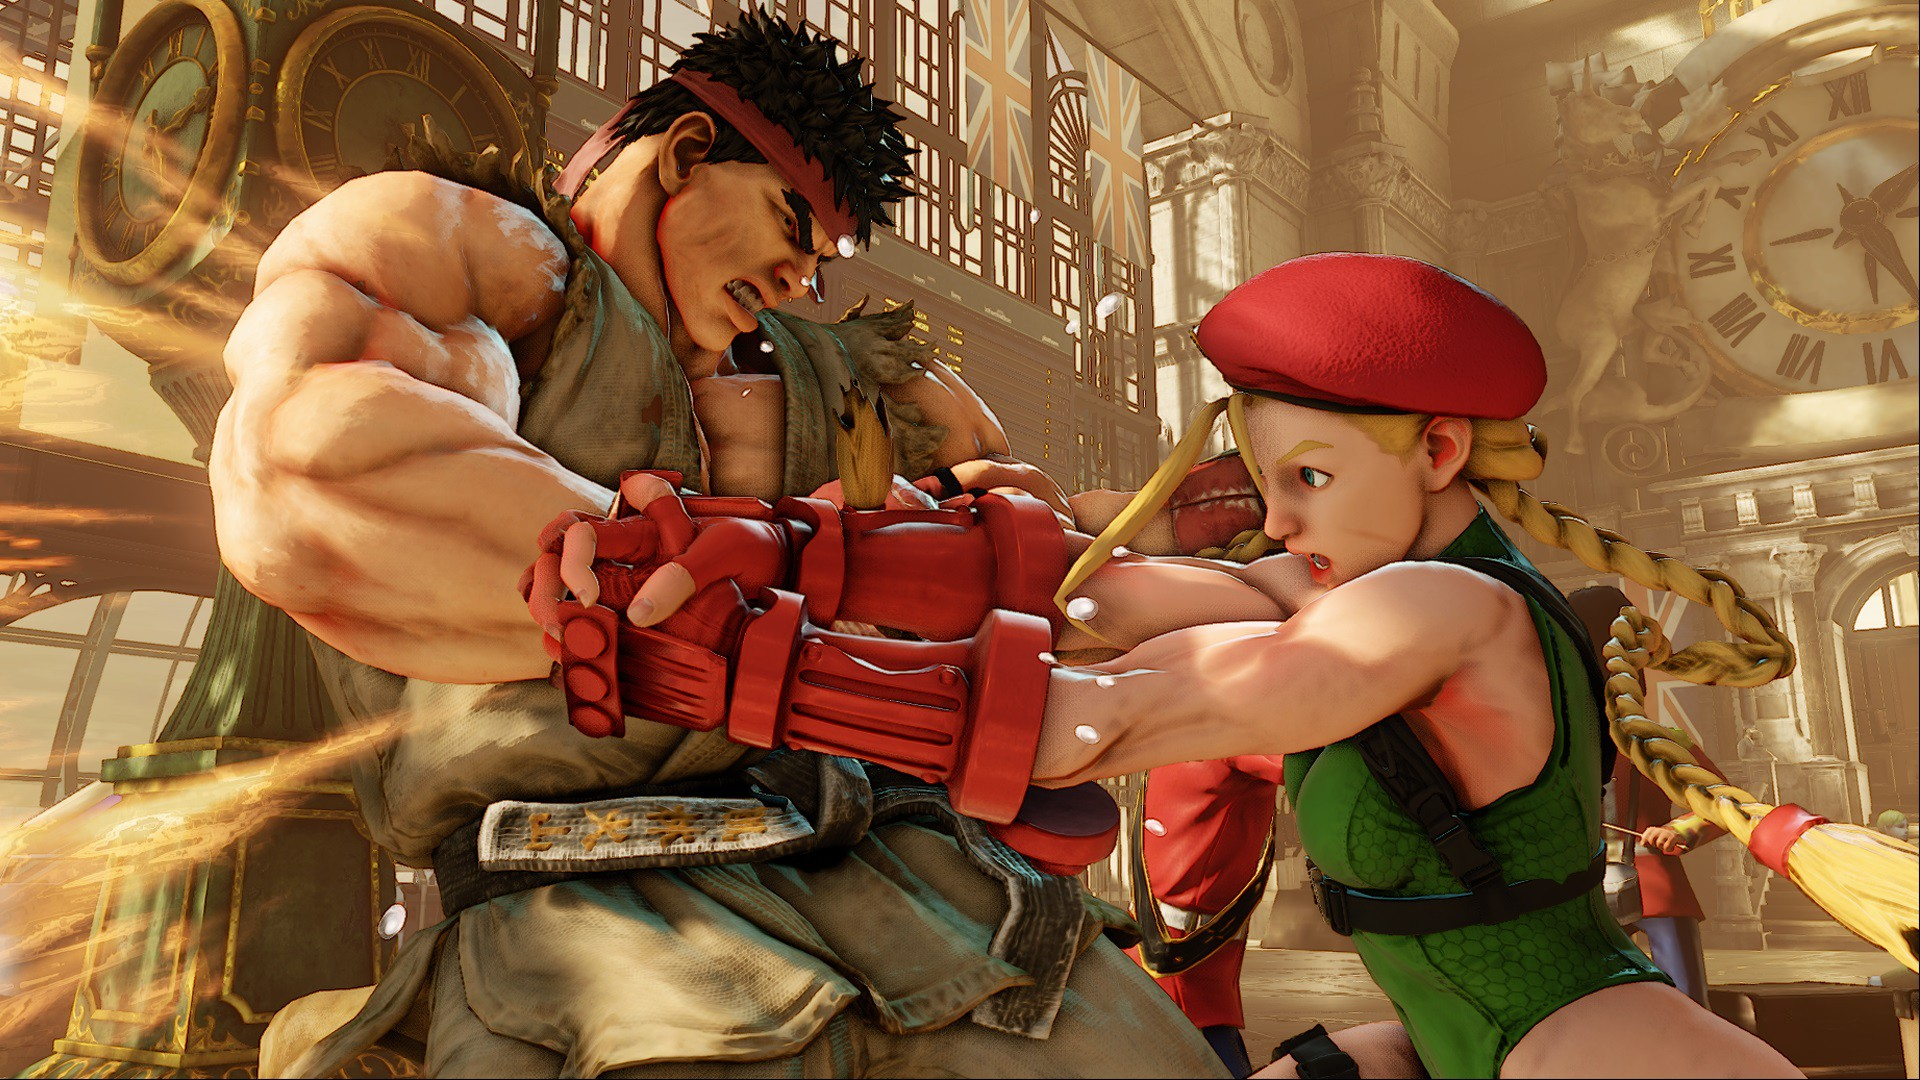 street-fighter-v-review-22-02-2016_1